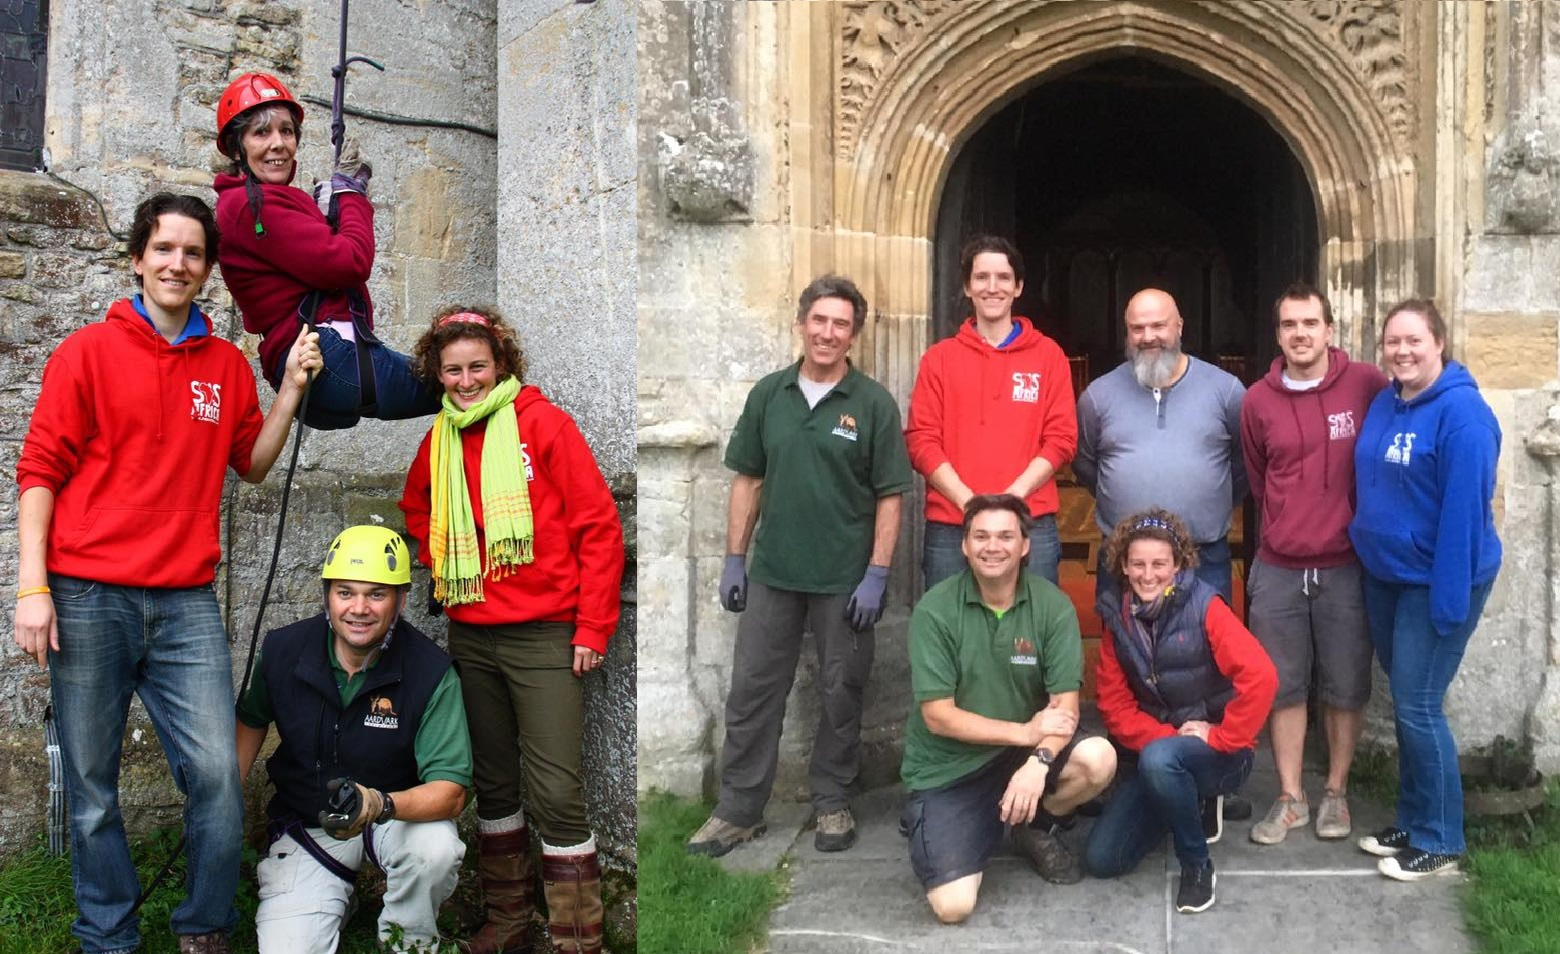 Events organisers from SOS Africa, Aardvark Endeavours and St Mary's Church Bruton